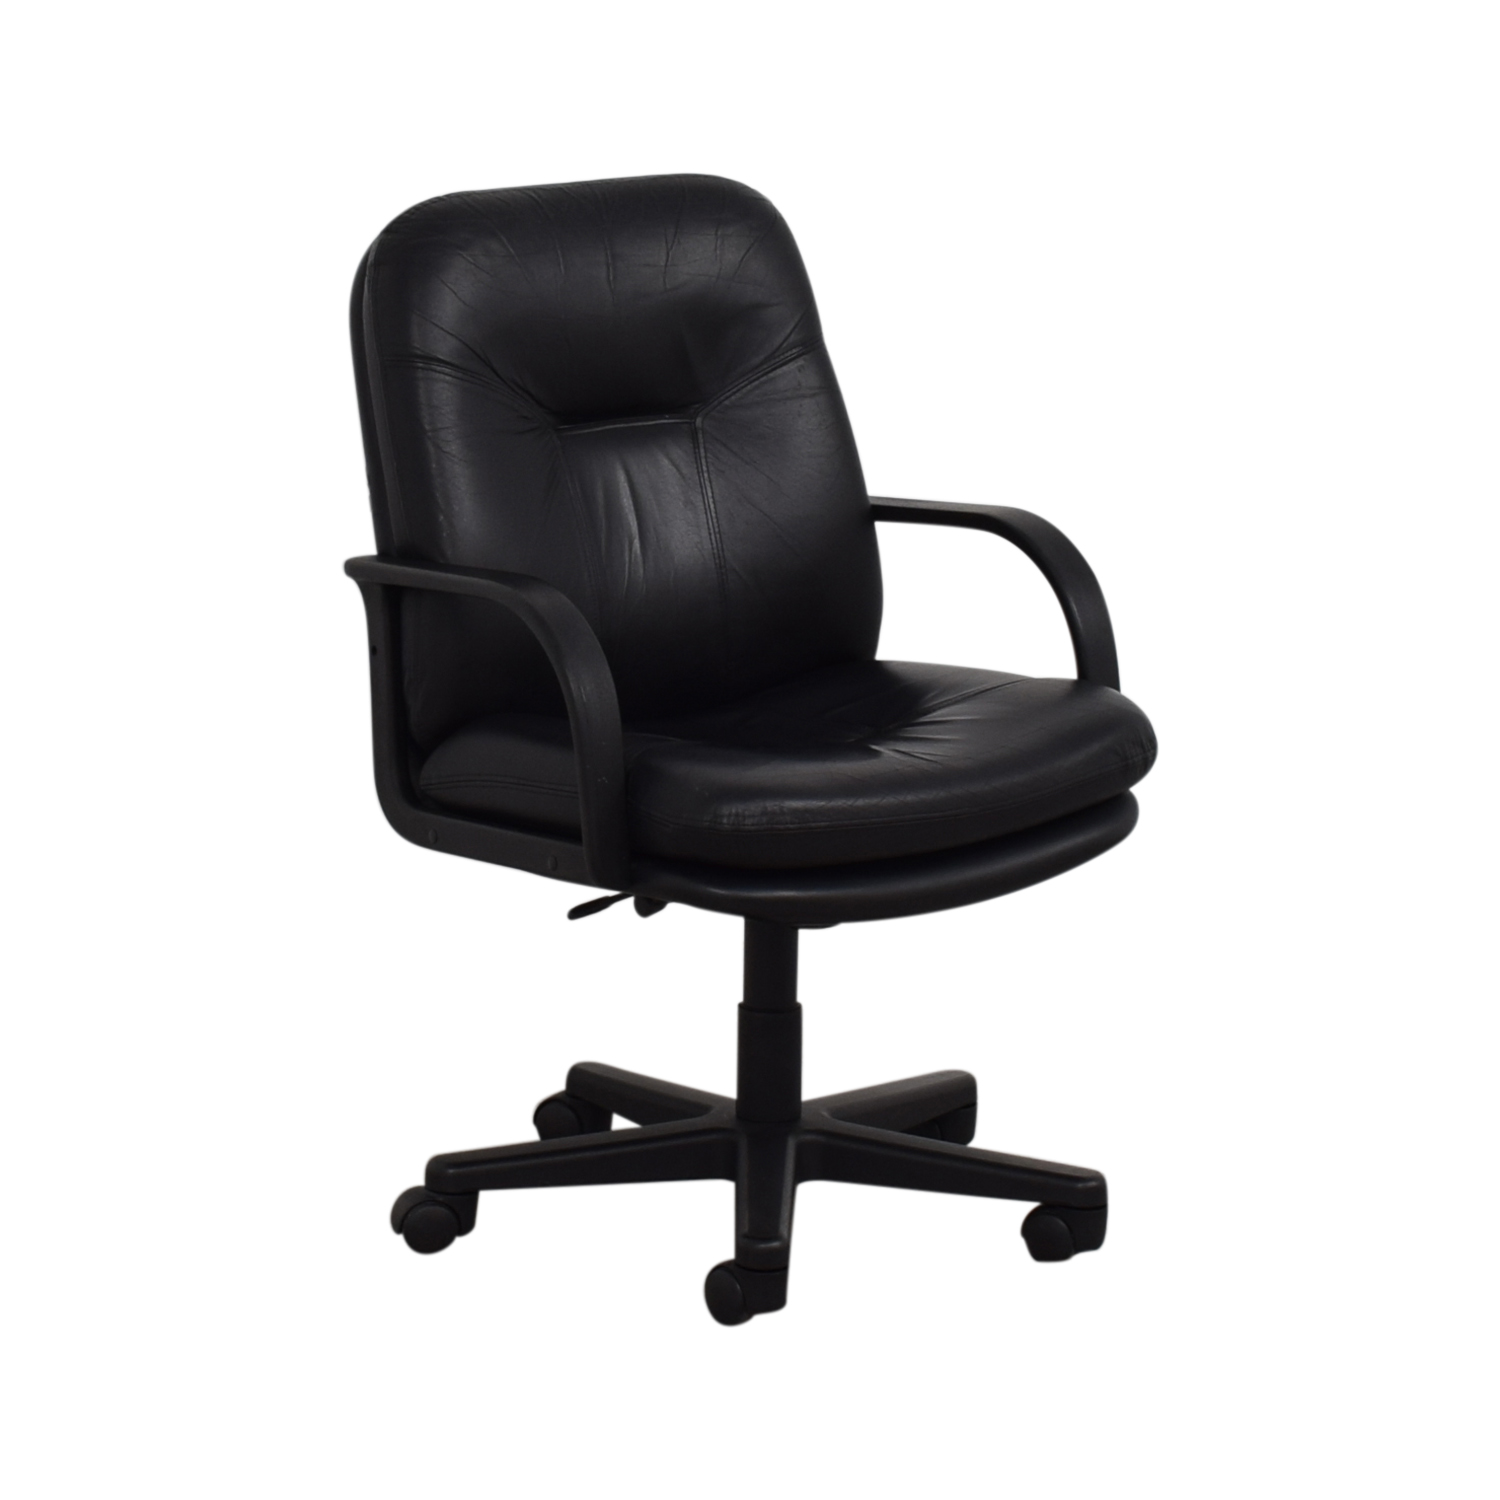 Black Office Chair used